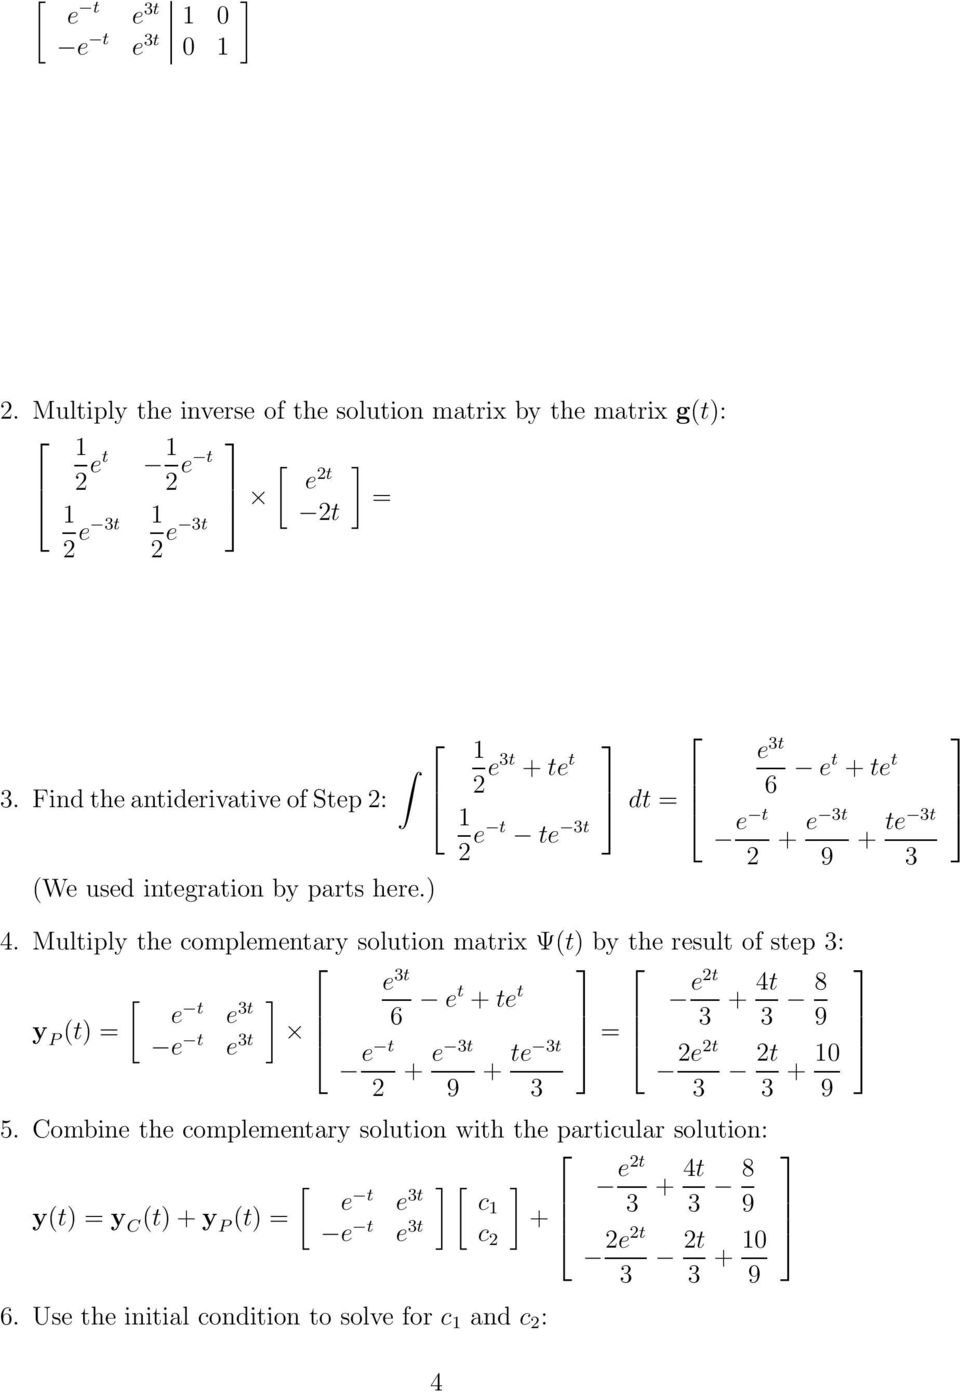 Multiply th complmntary solution matrix Ψ(t by th rsult of stp 3: 3t y P (t = t 3t t 3t 6 t + t t = 2t 3 + 4t 3 8 t 2 + 3t + t 3t 22t 3 3